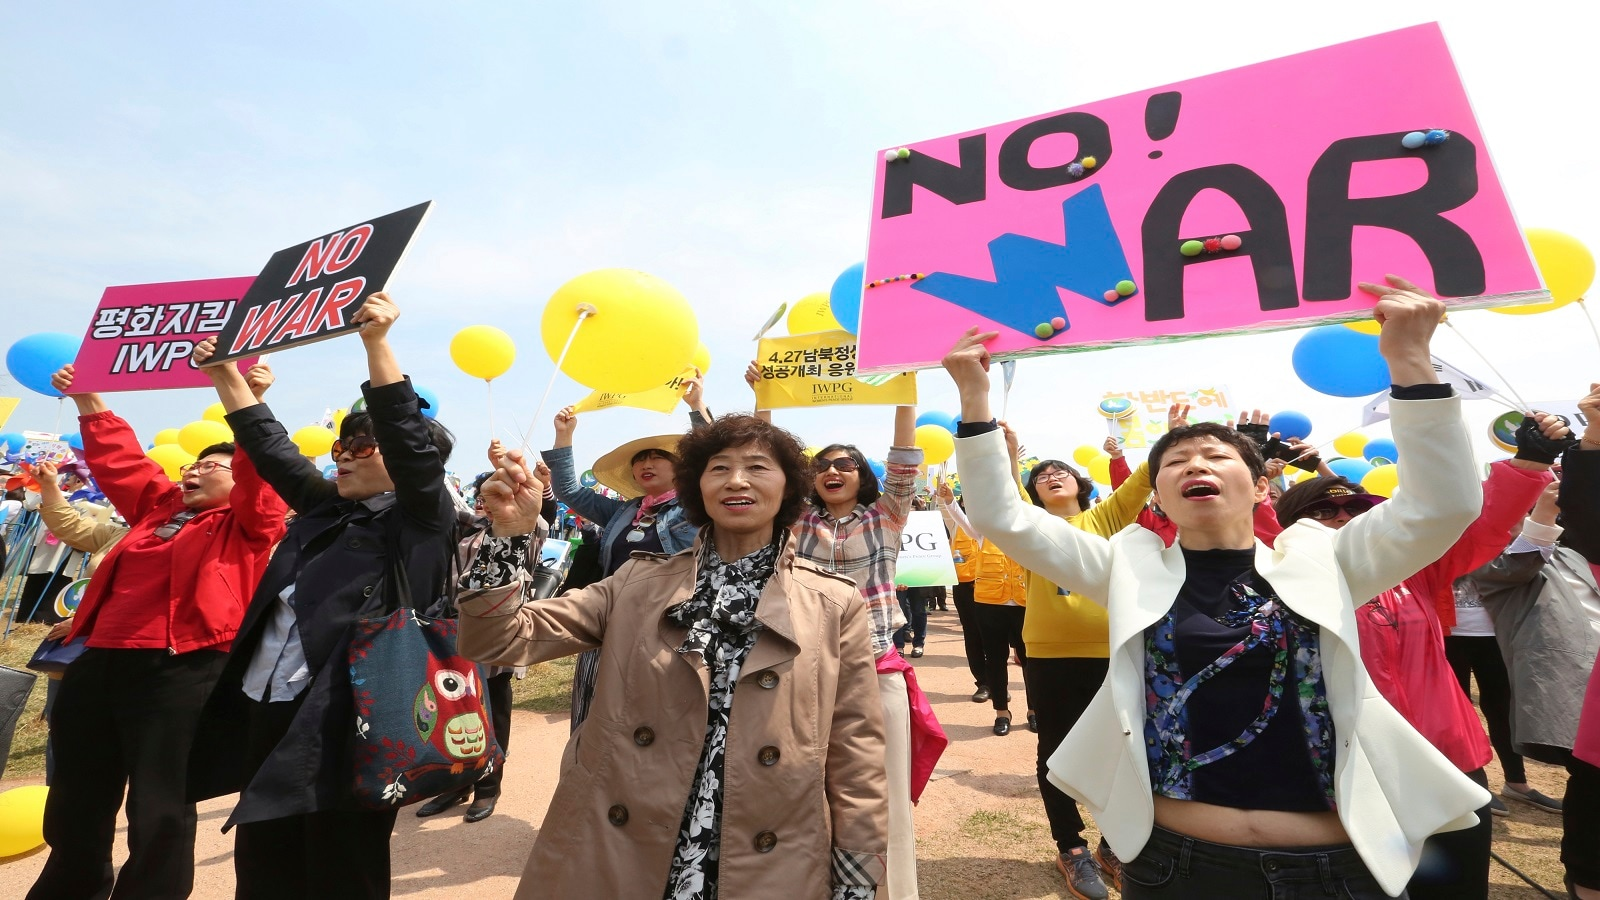 The historical summit has also given rise for anti-war feelings across the region. Thousands had gathered at various parts across South Korea praying for the success of the meet and for the end of hostility in the region. (AP Photo/Ahn Young-joon)